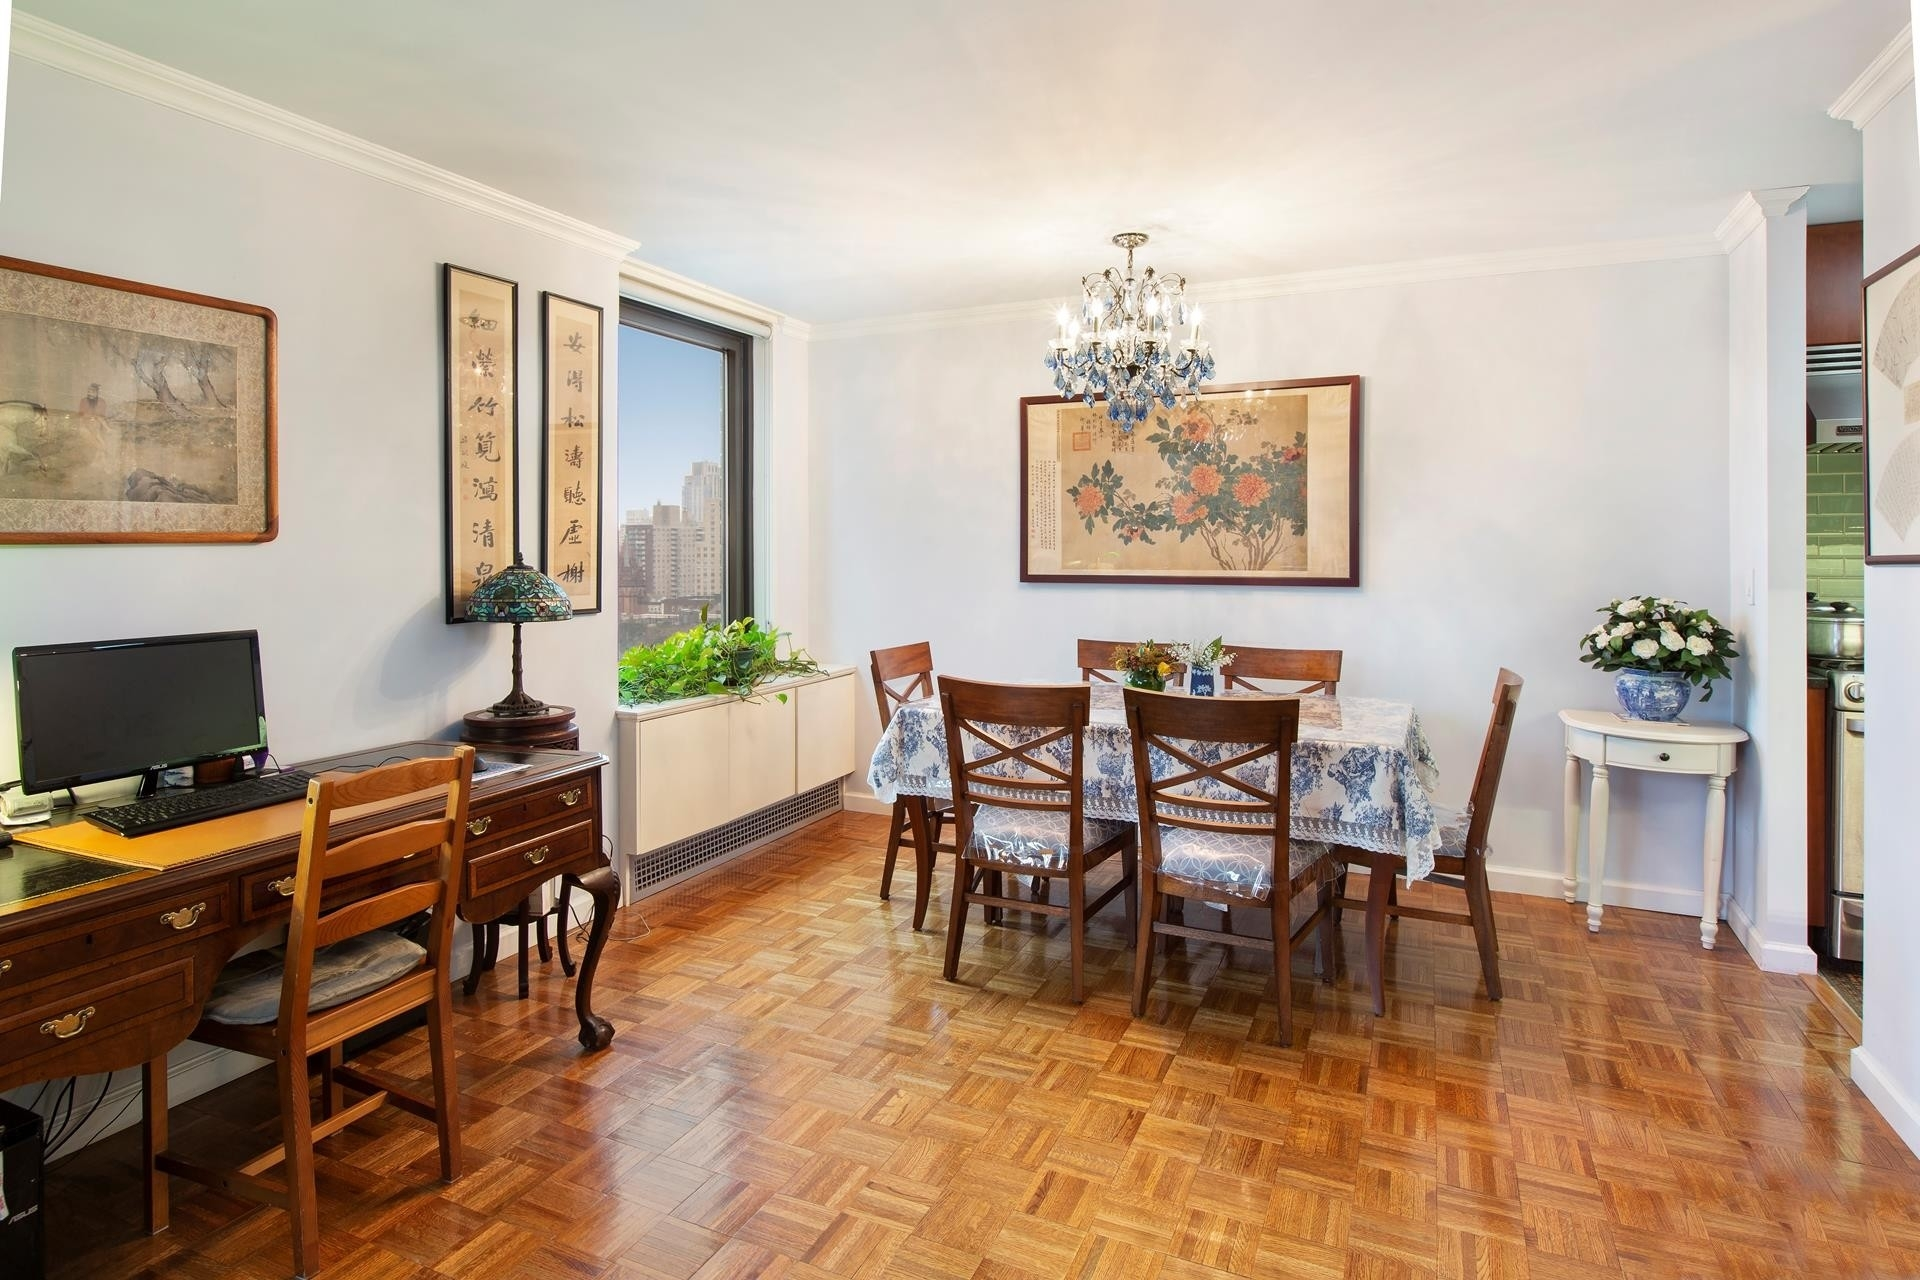 2. Condominiums for Sale at Ruppert Towers 2, 1619 THIRD AVE , 11A Yorkville, New York, NY 10128